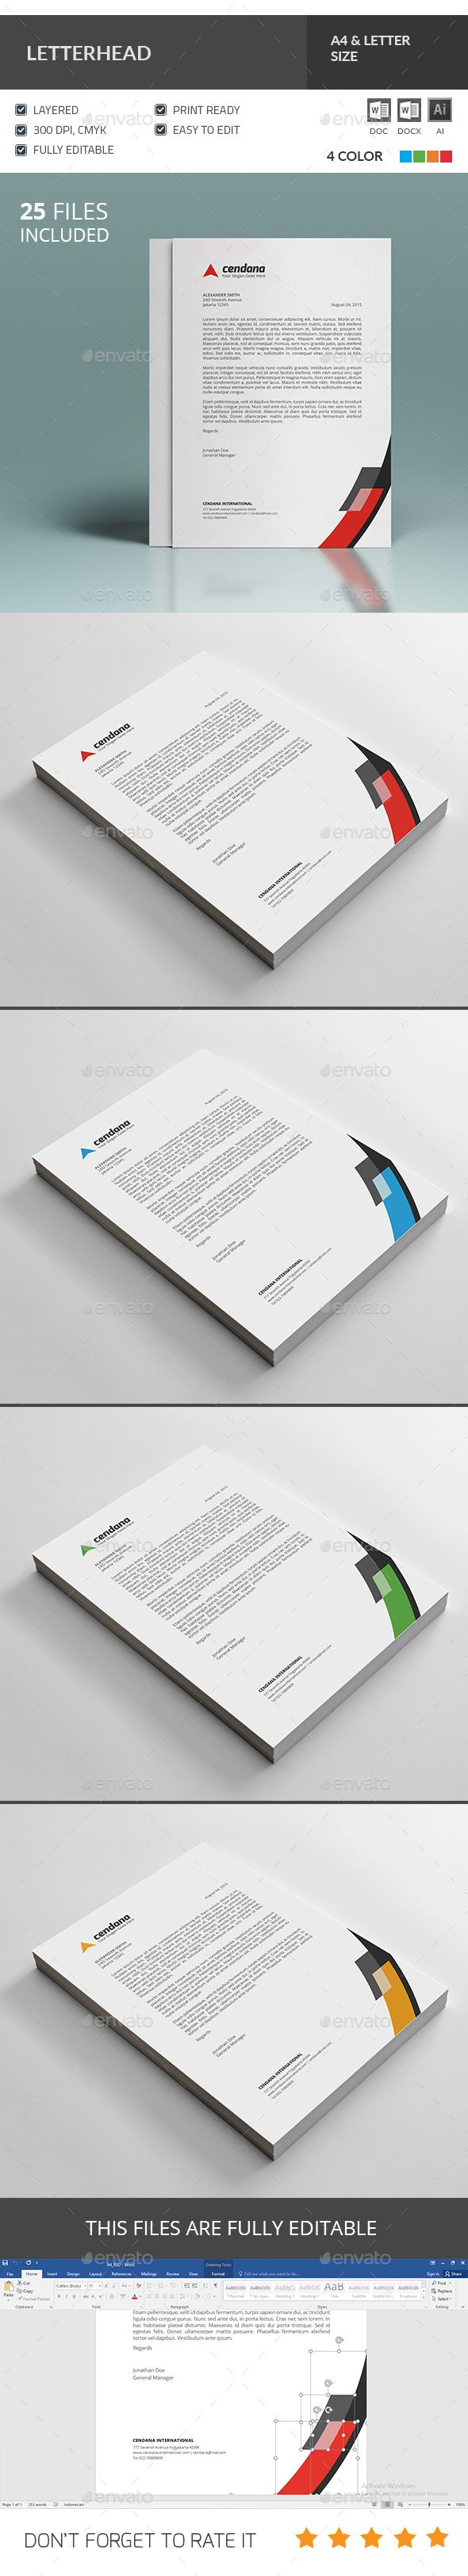 #Letterhead Template - Stationery Print #Templates Download here: https://graphicriver.net/item/letterhead-template/19690911?ref=alena994